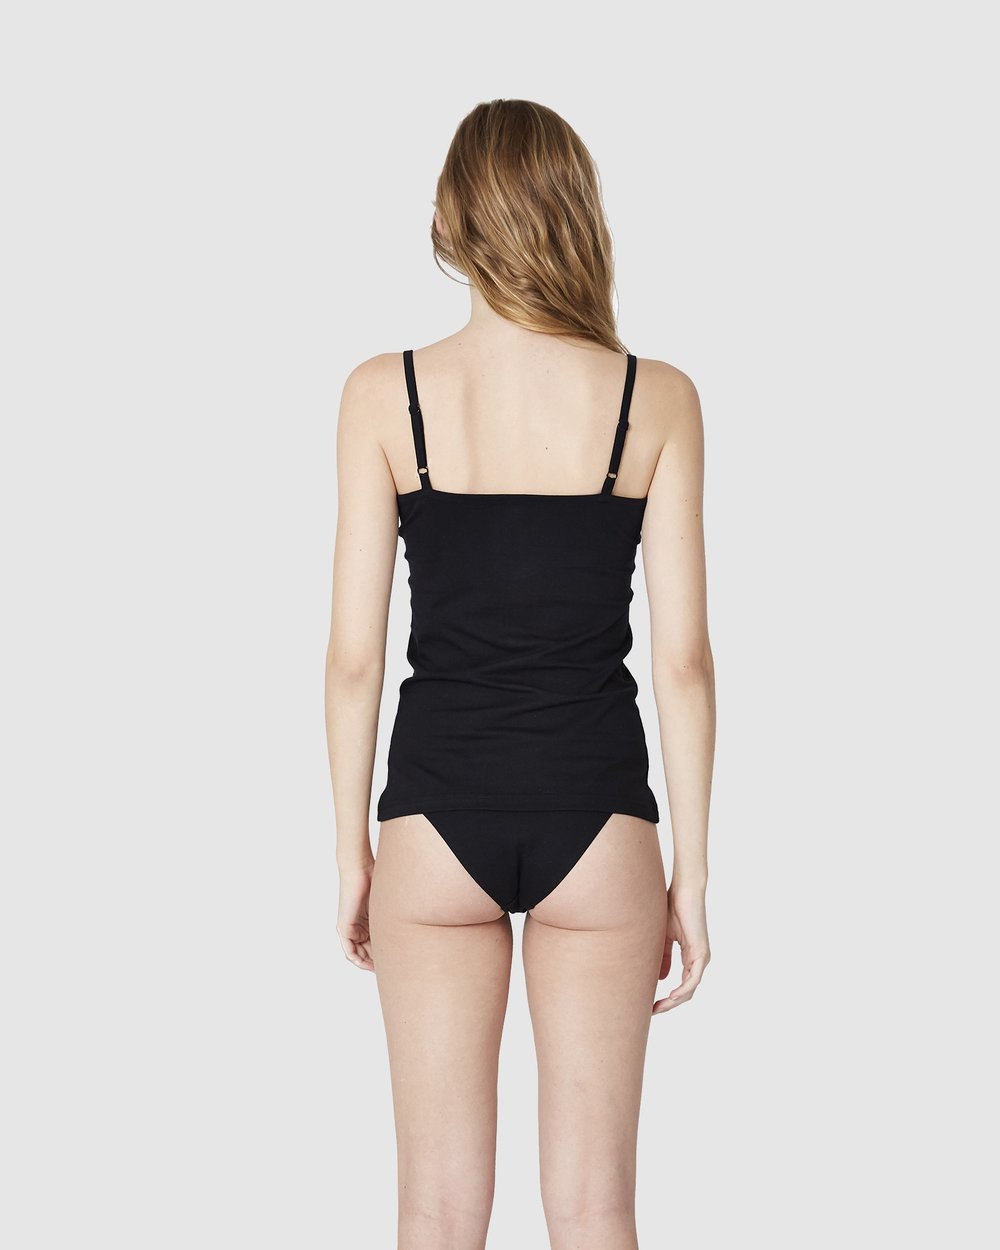 348cc7d4ab7e Spaghetti Strap Tops - 3 Pack by Mighty Good Undies Online | THE ICONIC |  Australia